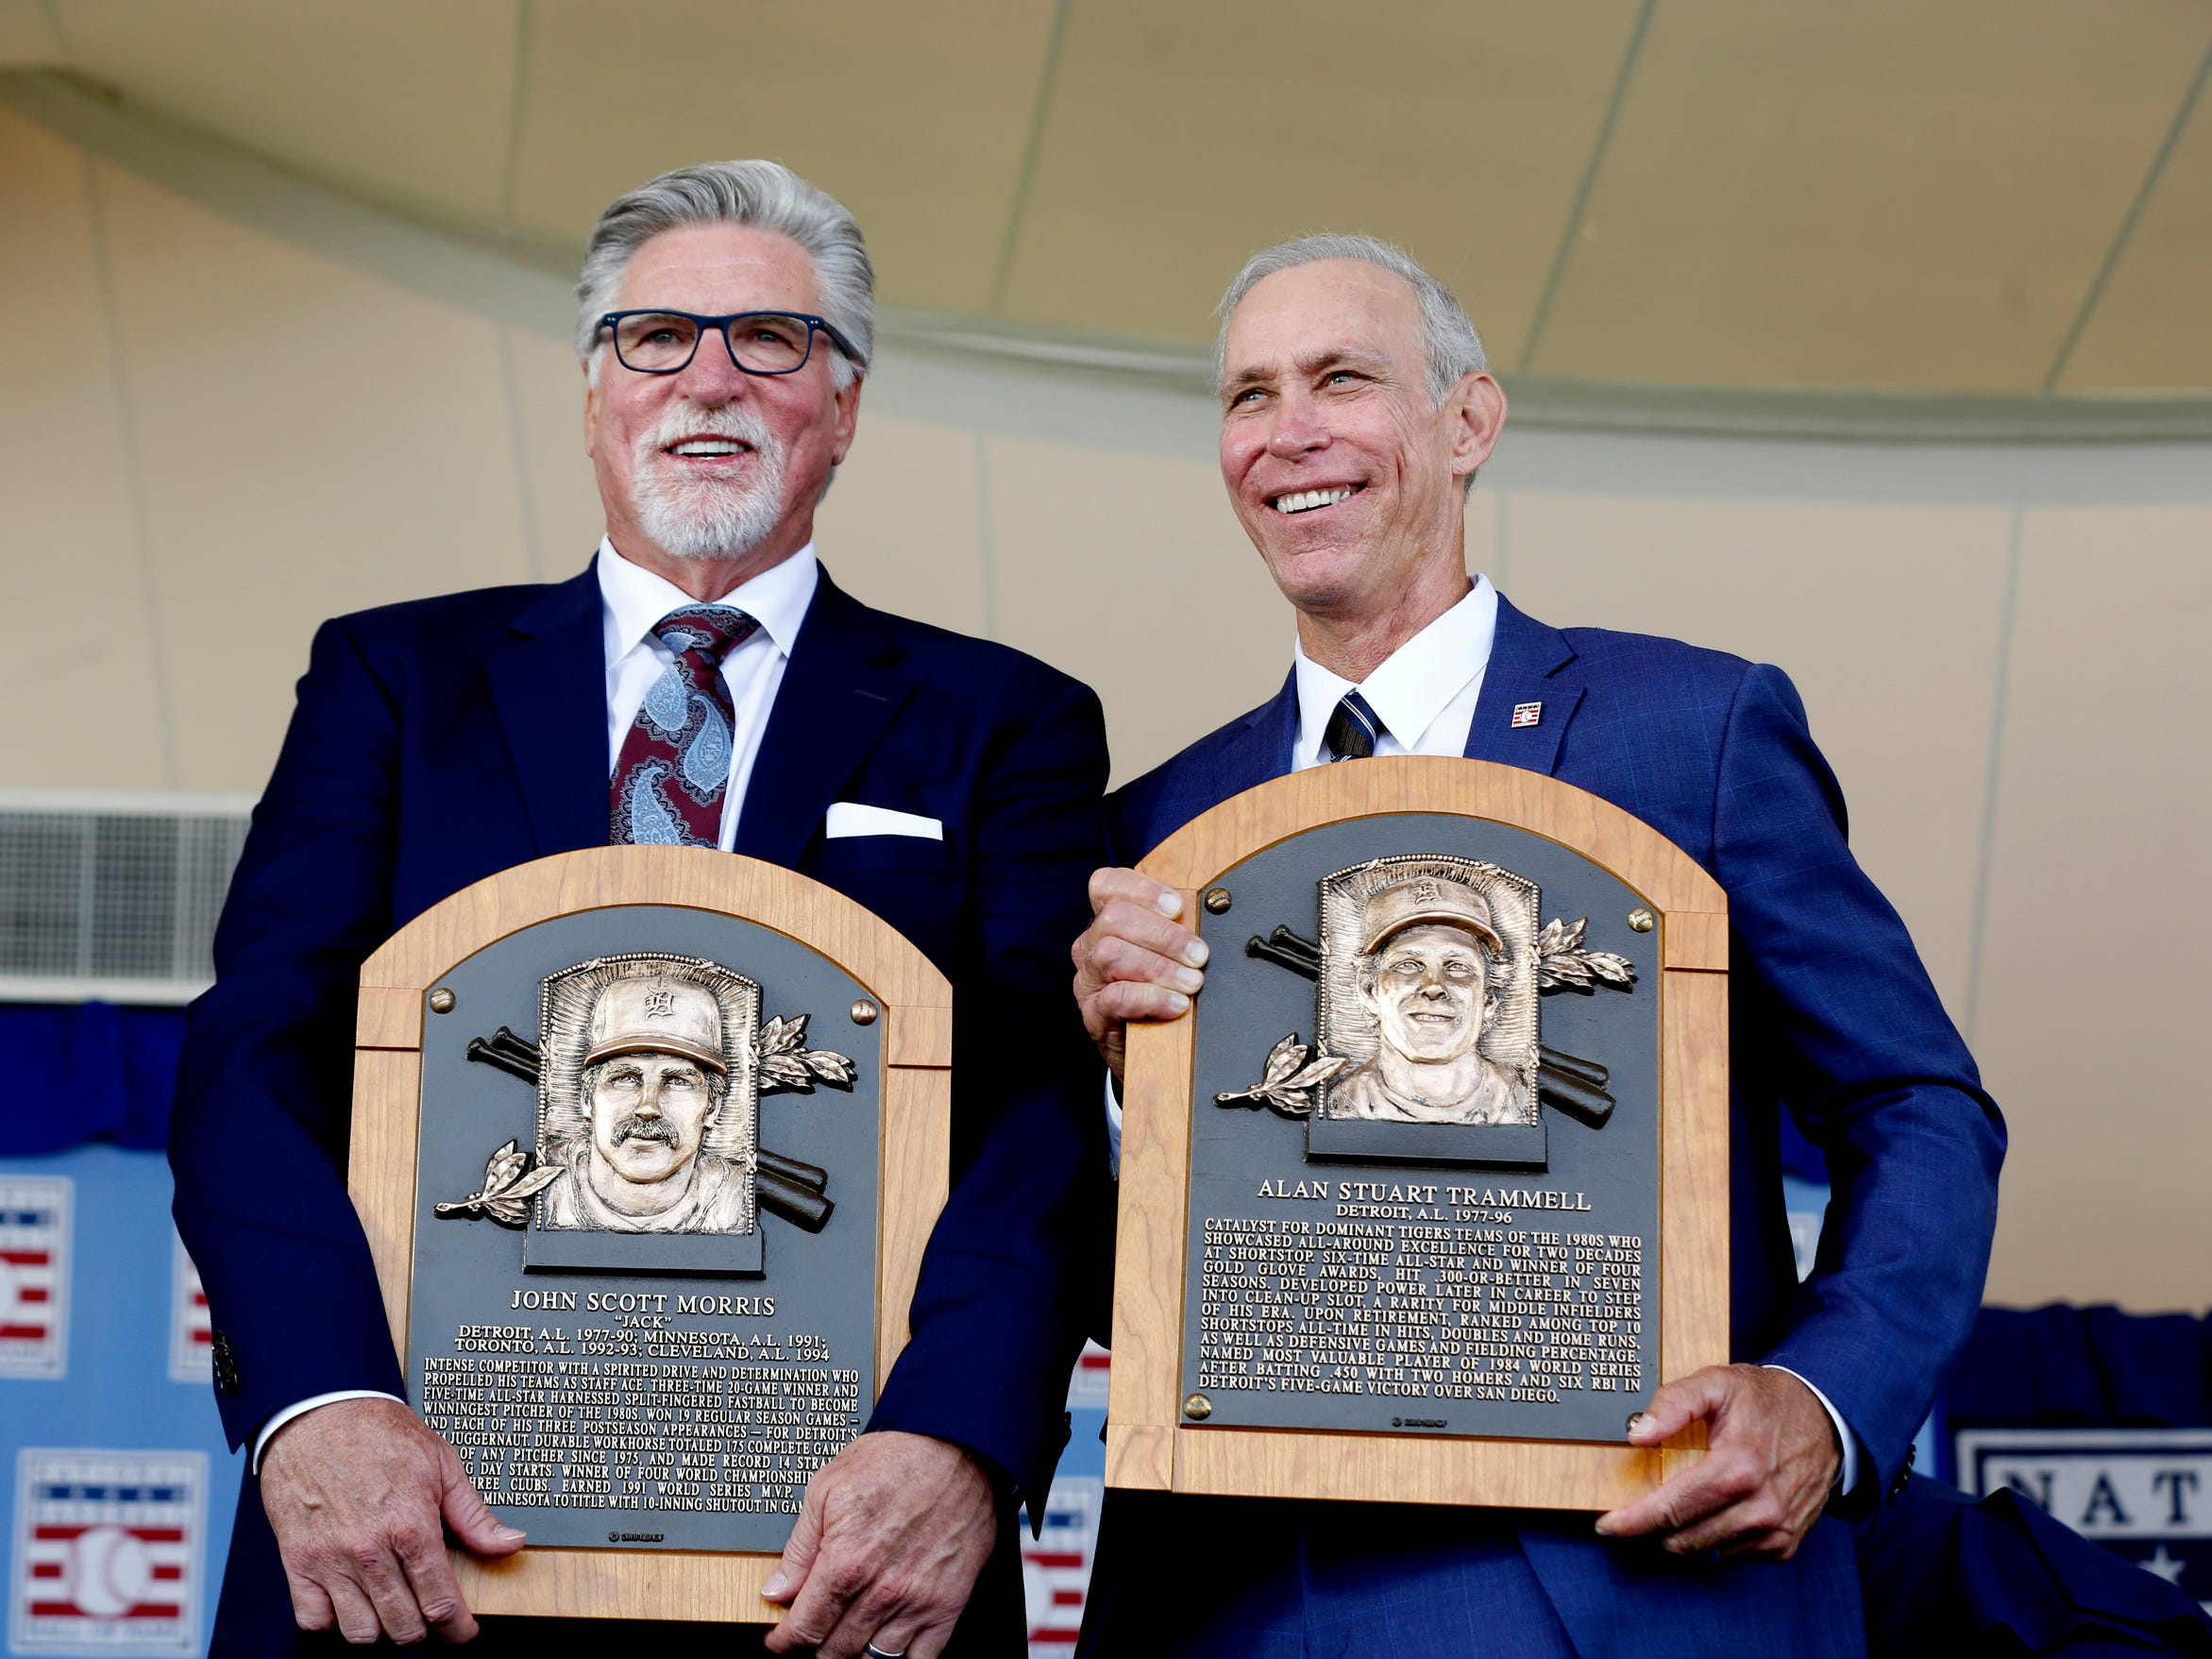 Detroit Tigers and now hall of famers Jack Morris and Alan Trammell with their hall of fame plaques that they were presented with at the Clark Sports Center during the National Baseball Hall of Fame induction ceremony in Cooperstown, NY on Sunday, July 29, 2018